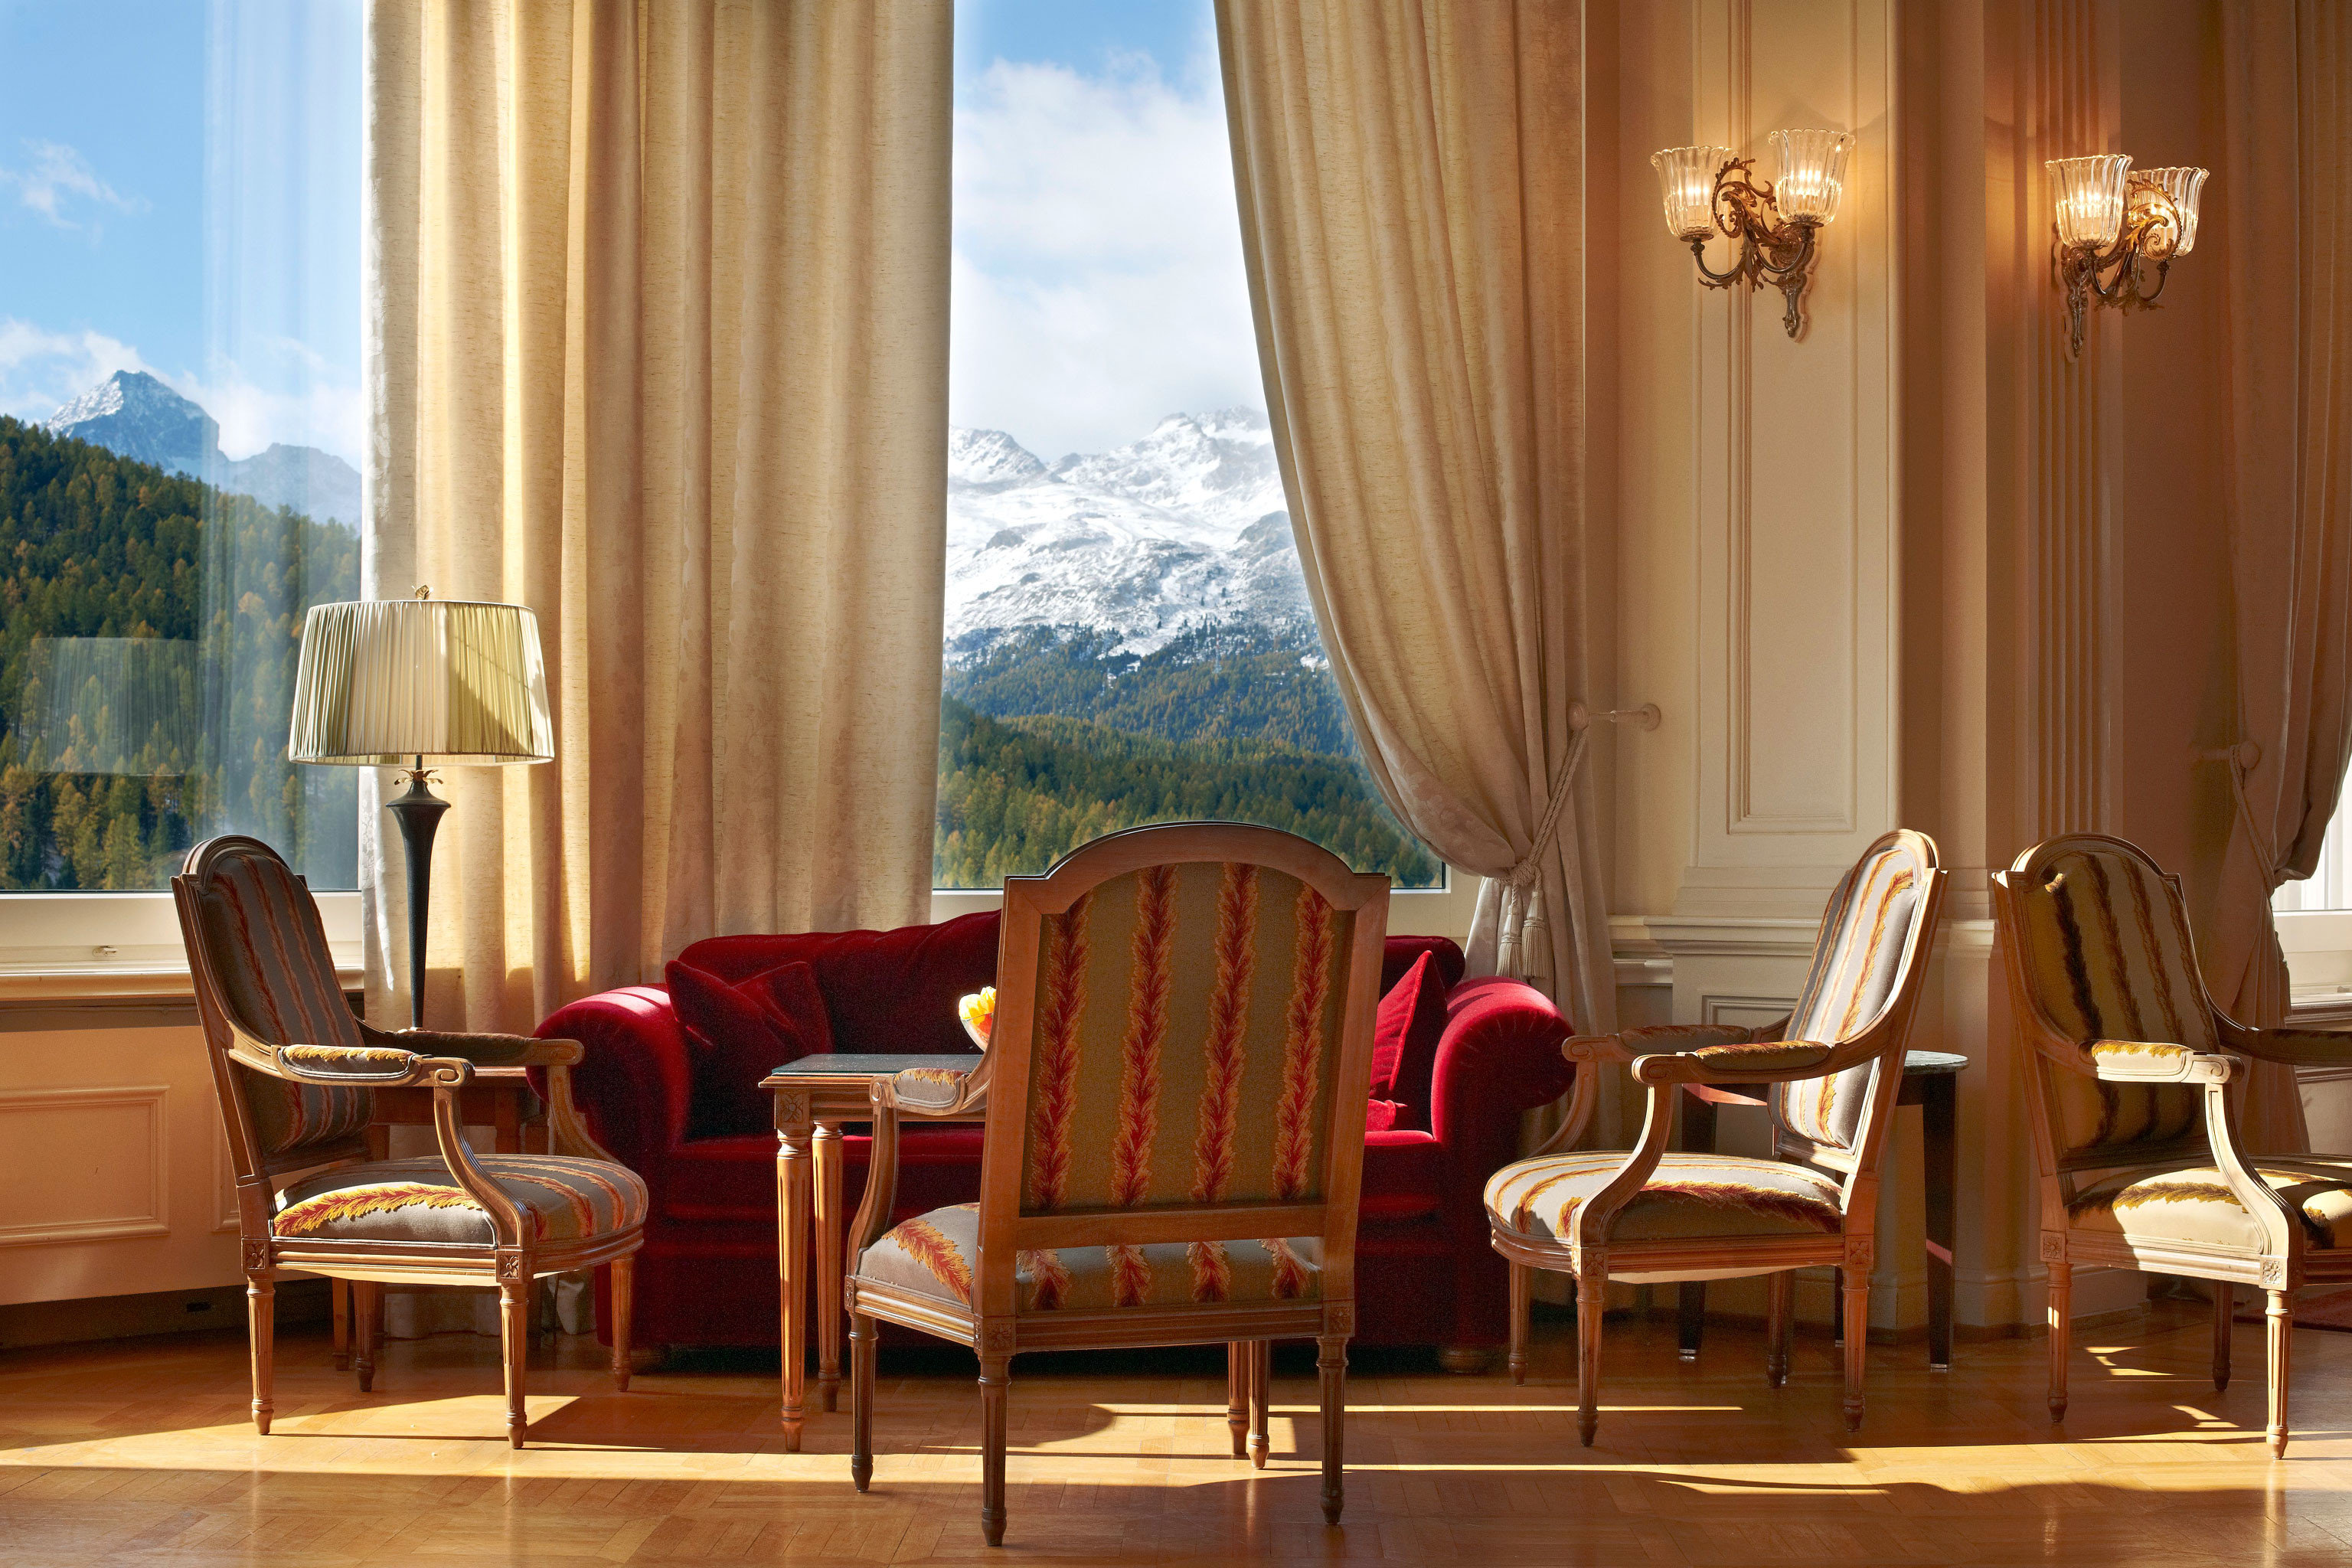 Classic Lobby Mountains Scenic views chair property Suite living room home curtain window treatment textile restaurant dining table